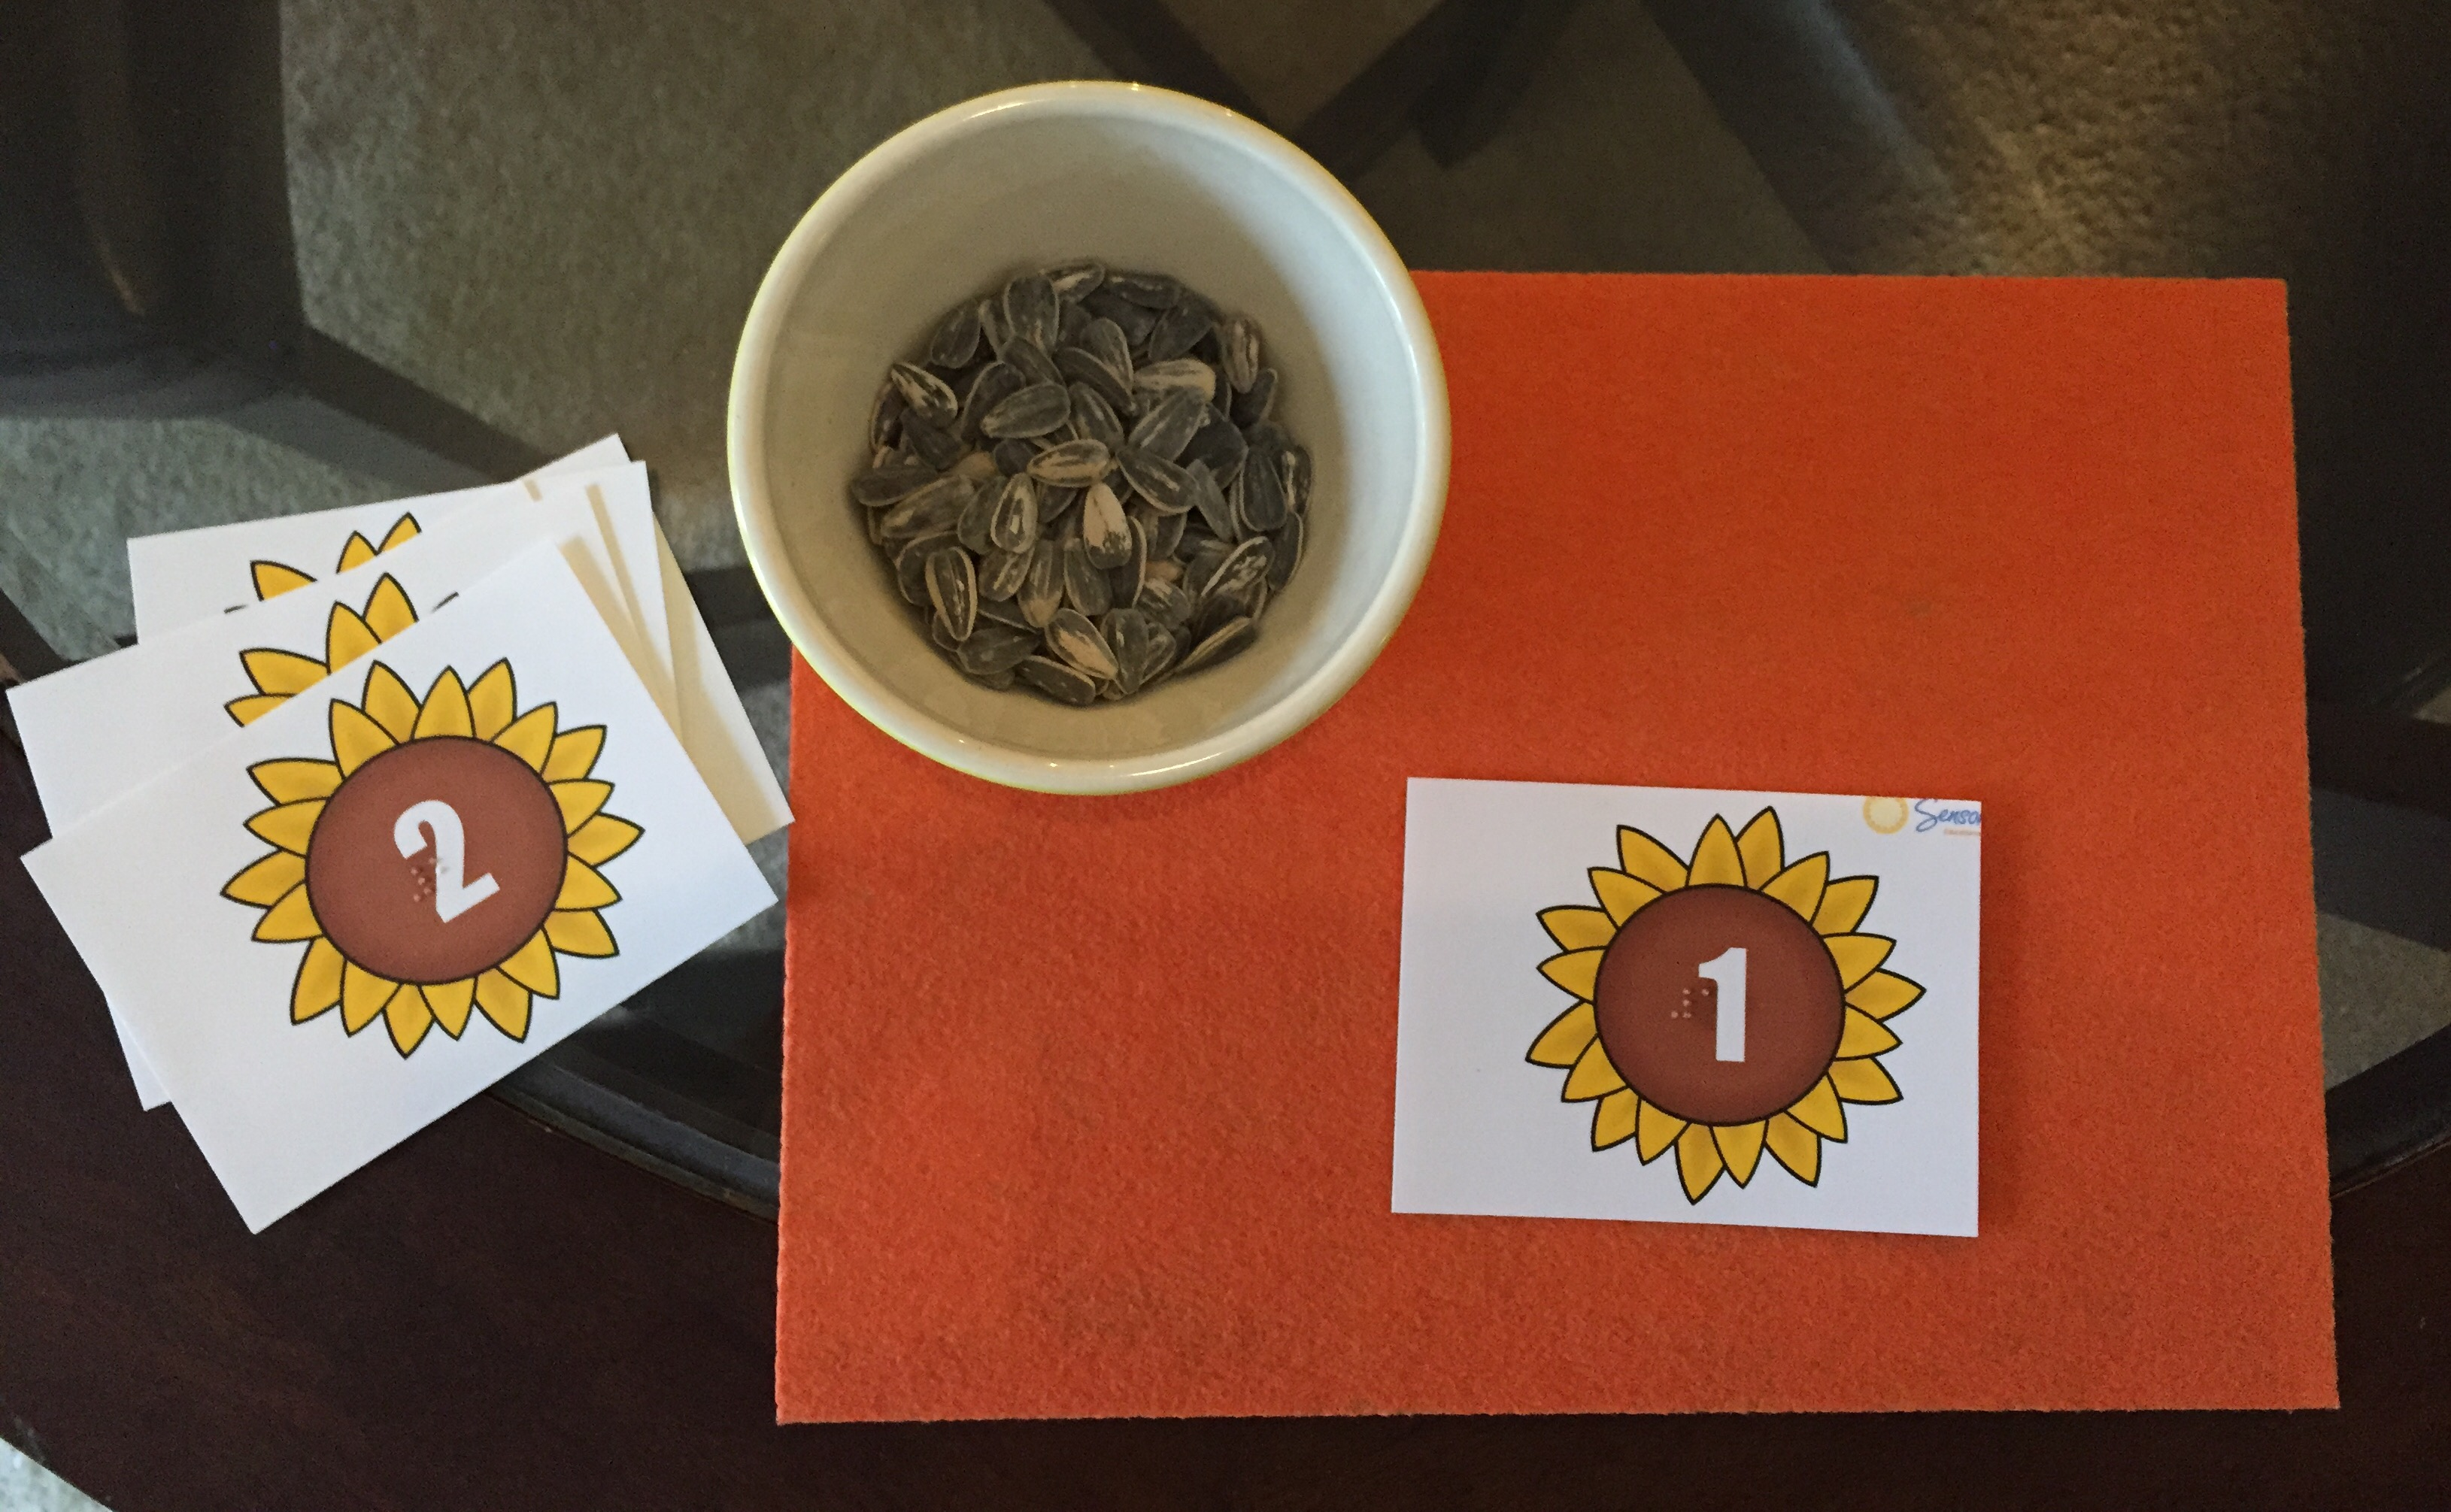 sunflower seeds counting game on orange mat